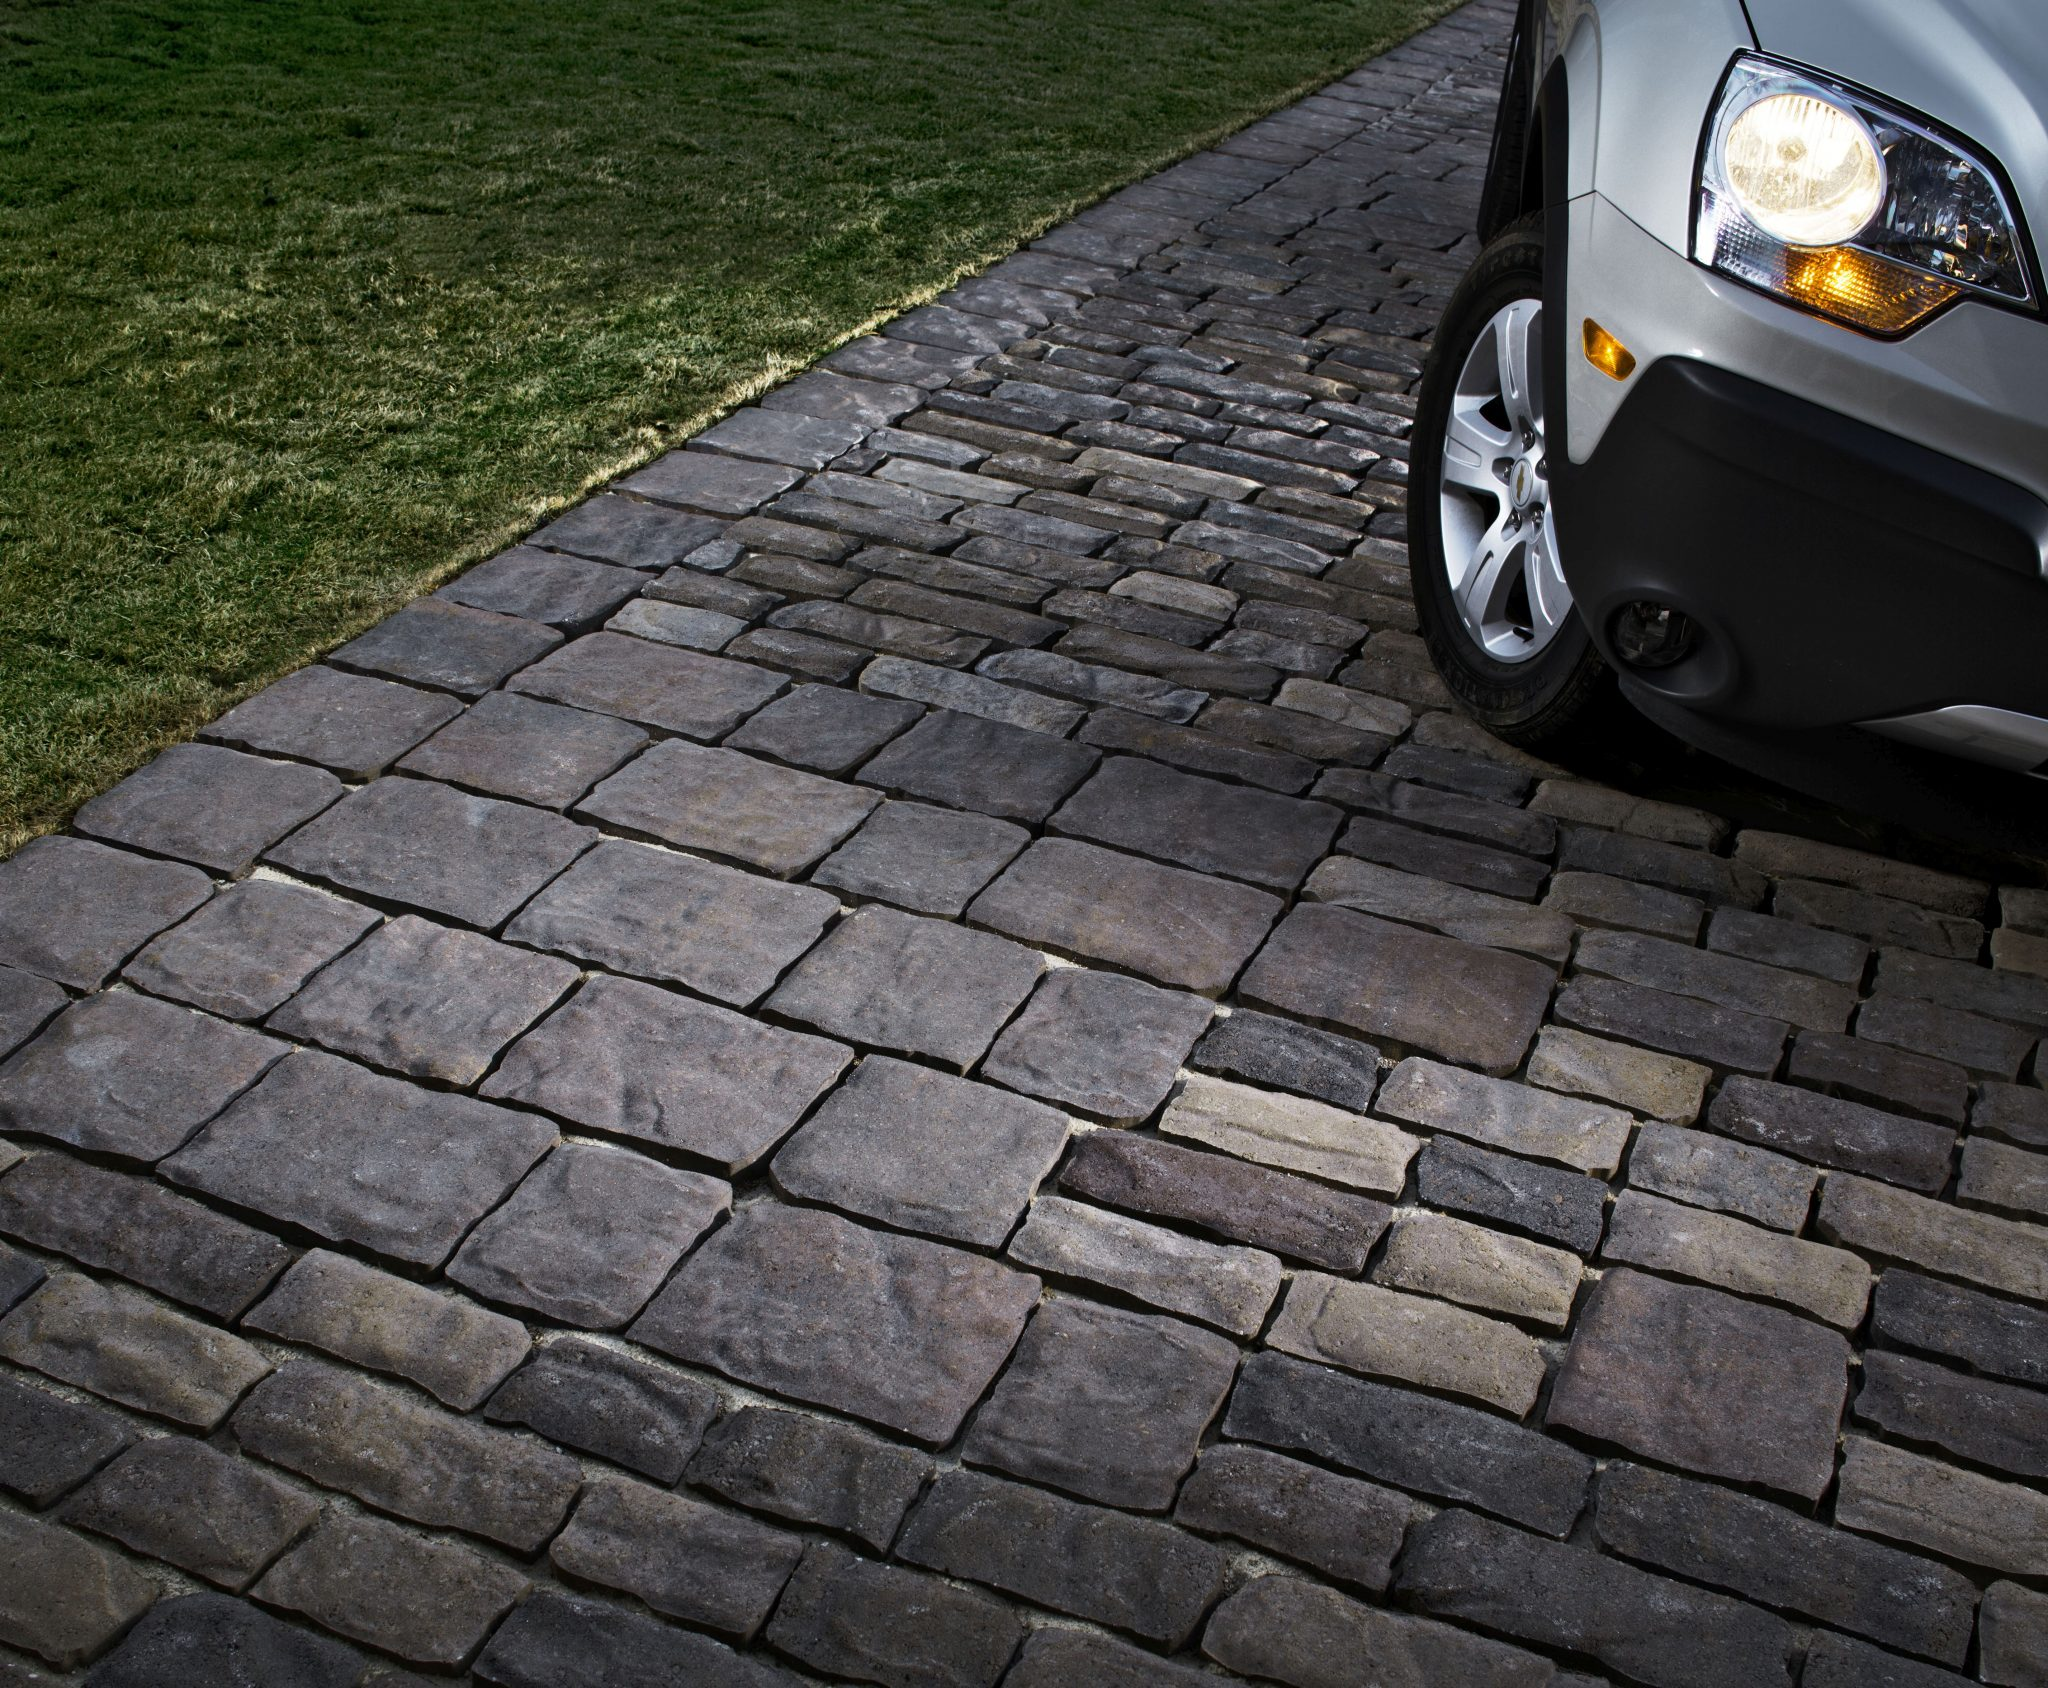 How to Remove Oil Stains from Concrete Pavers (Step-by-Step Guide)